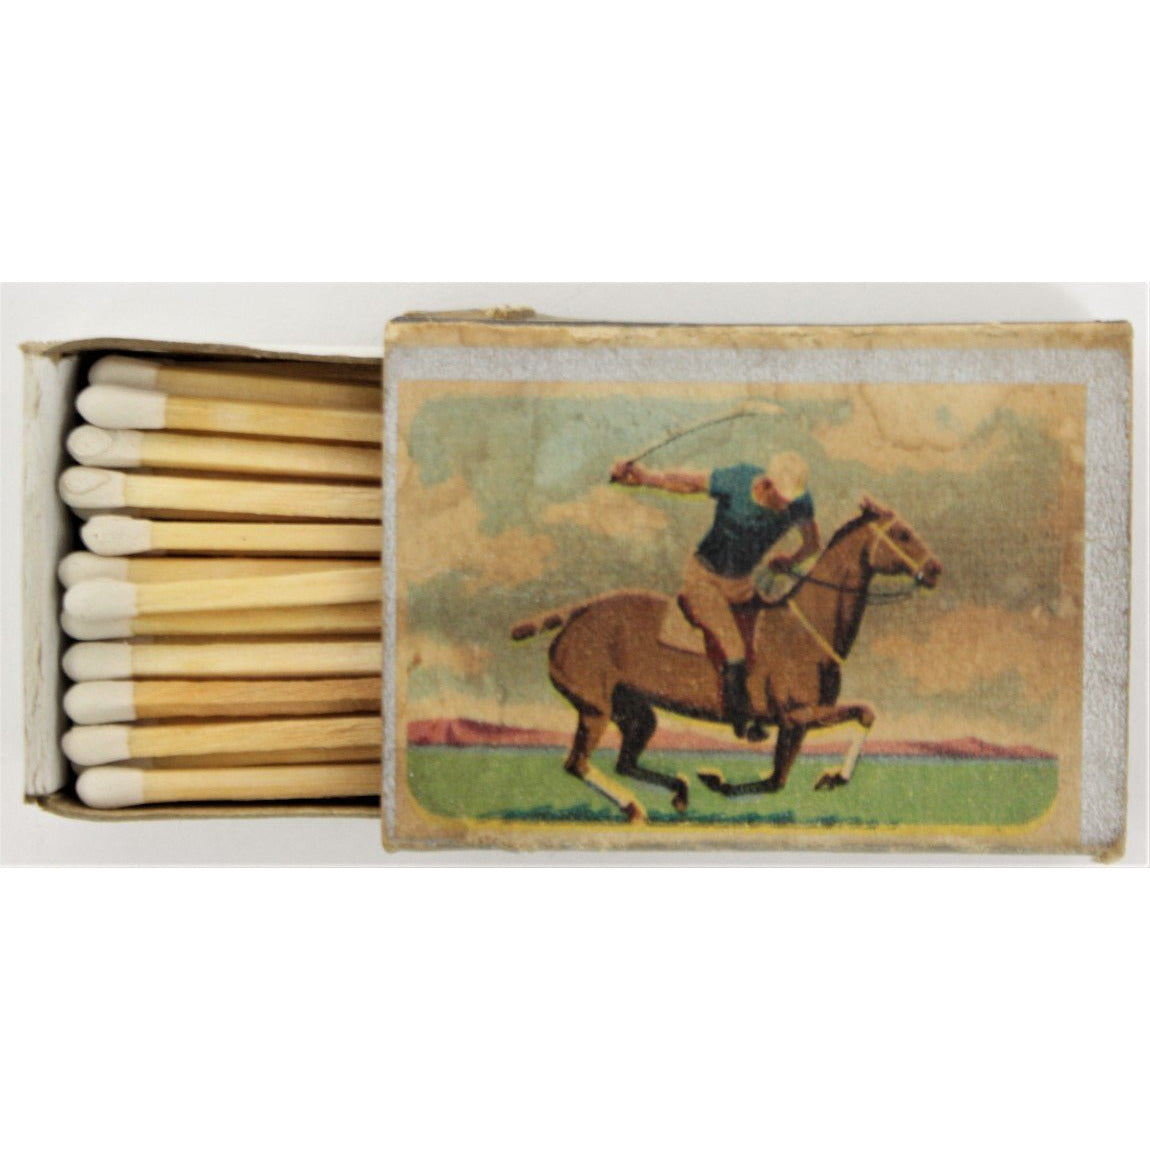 Polo Player Matchbook